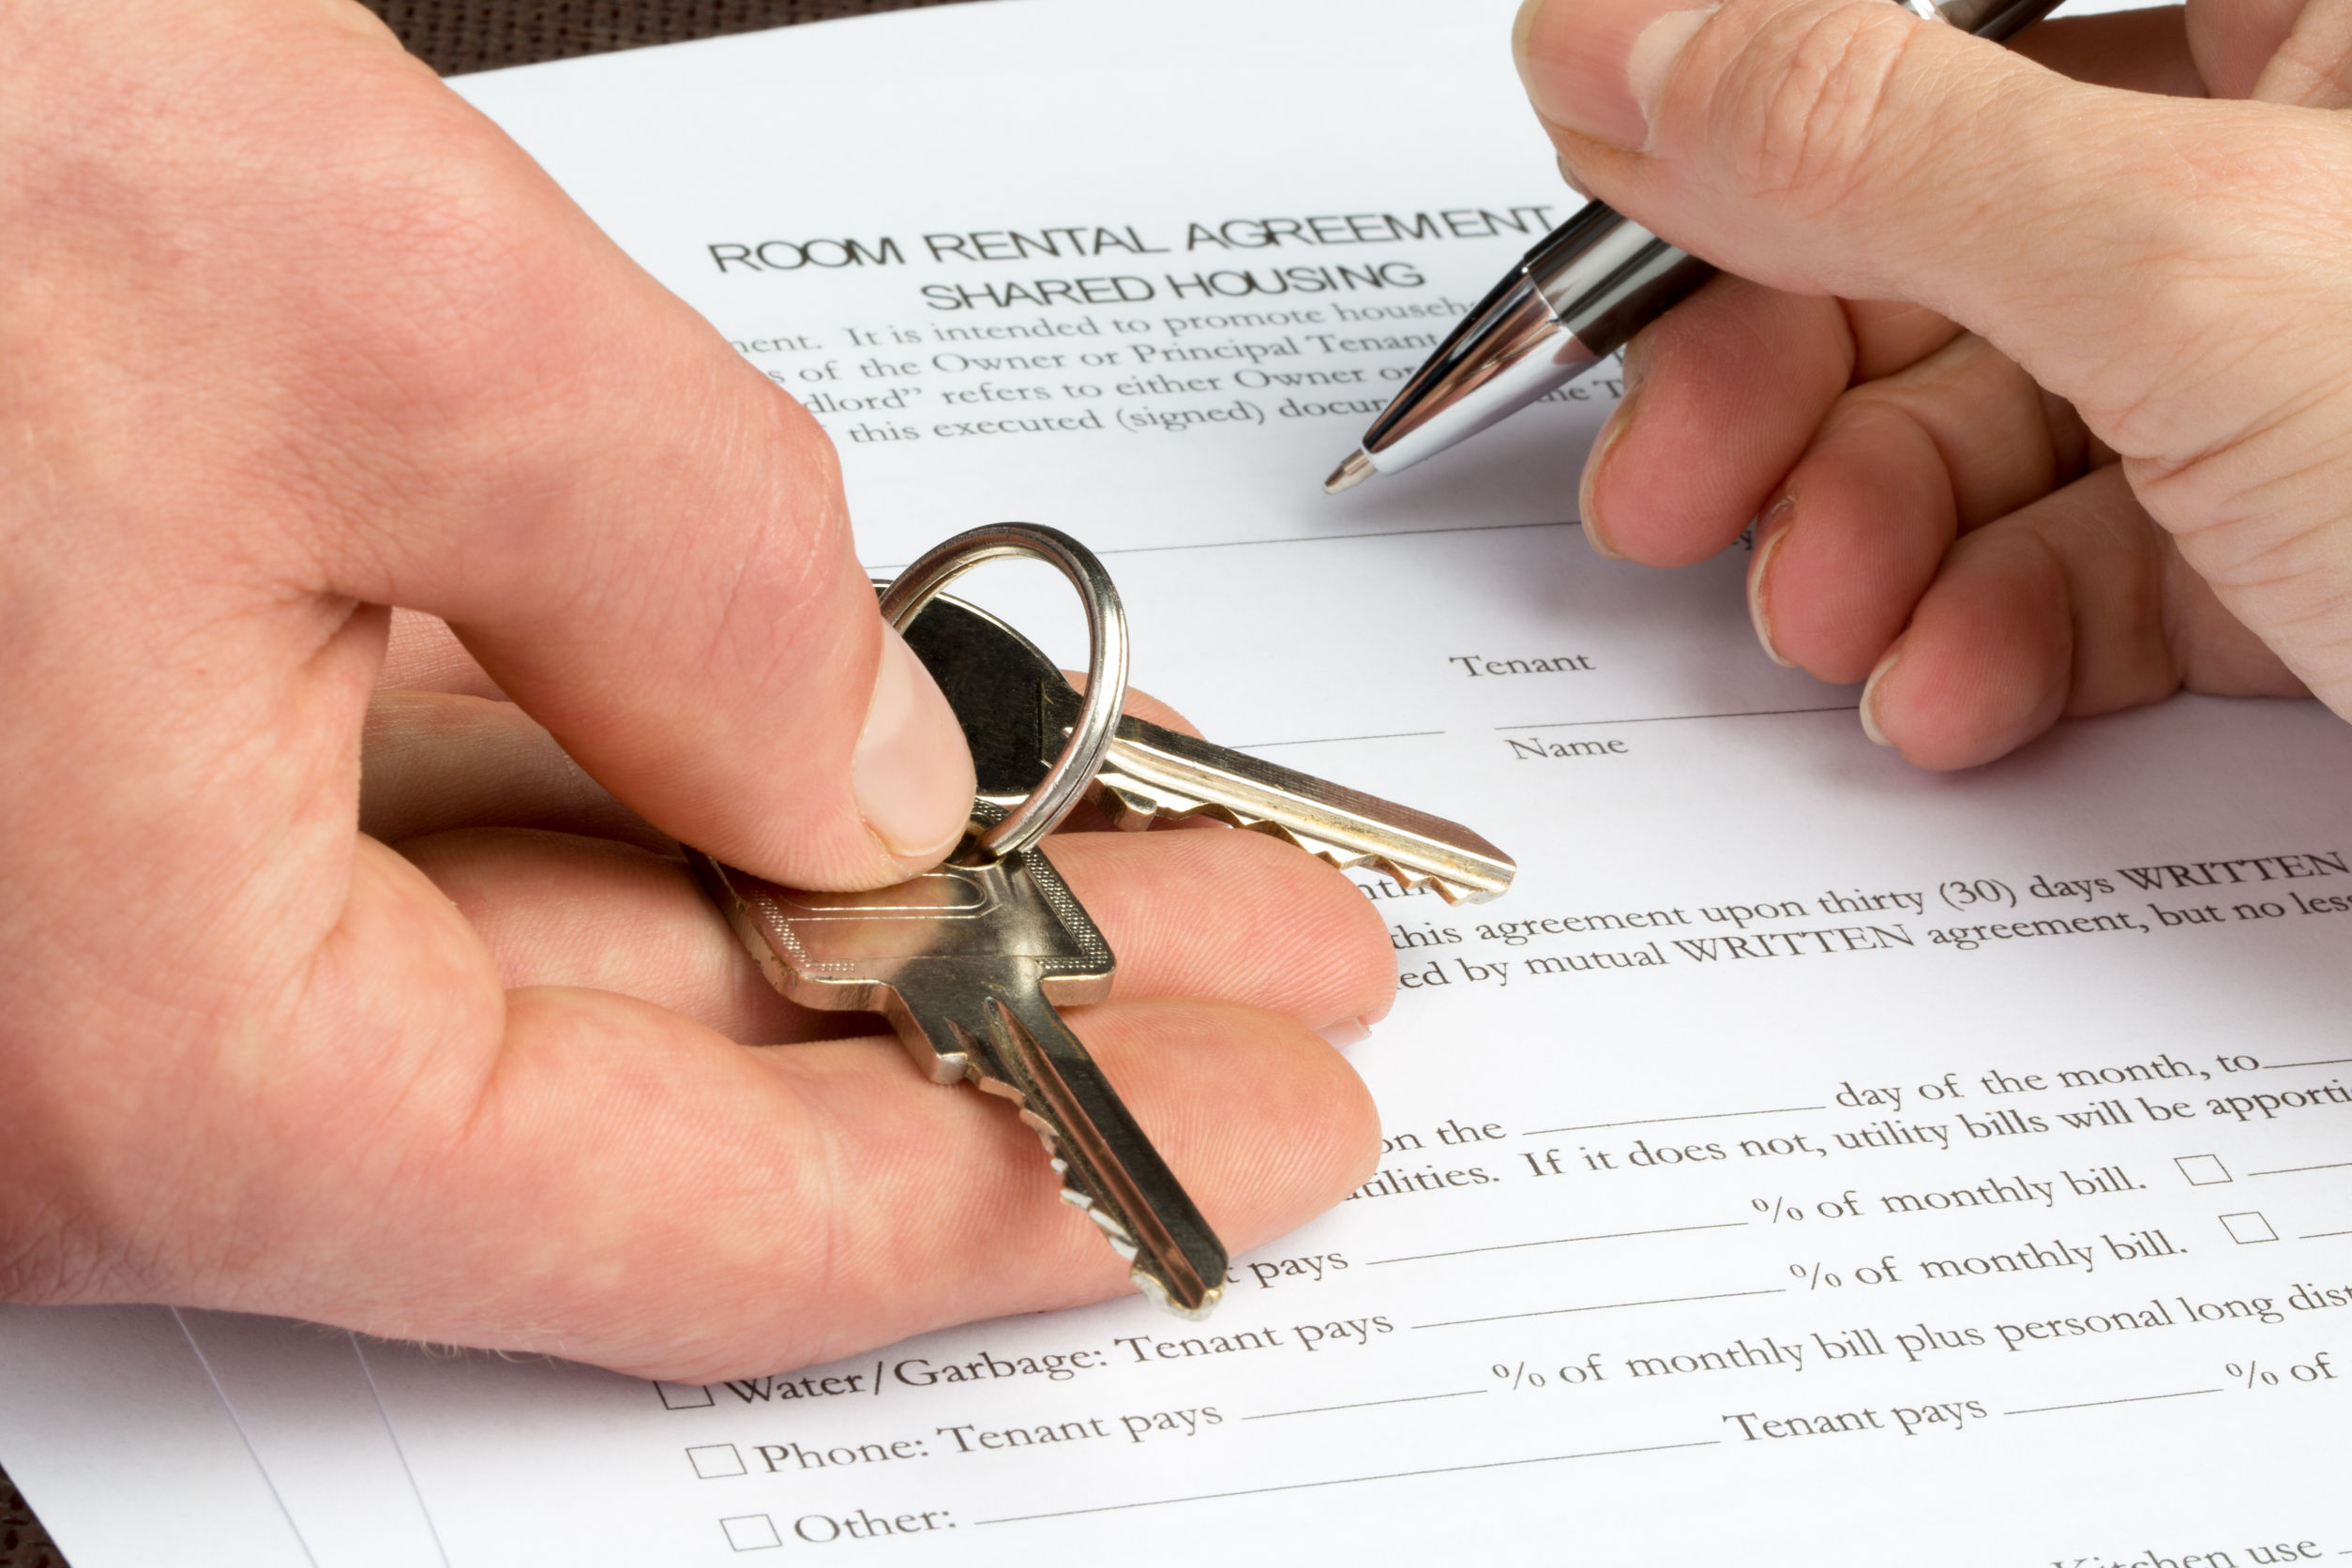 For more information about Letters of Intent, check out this article here.